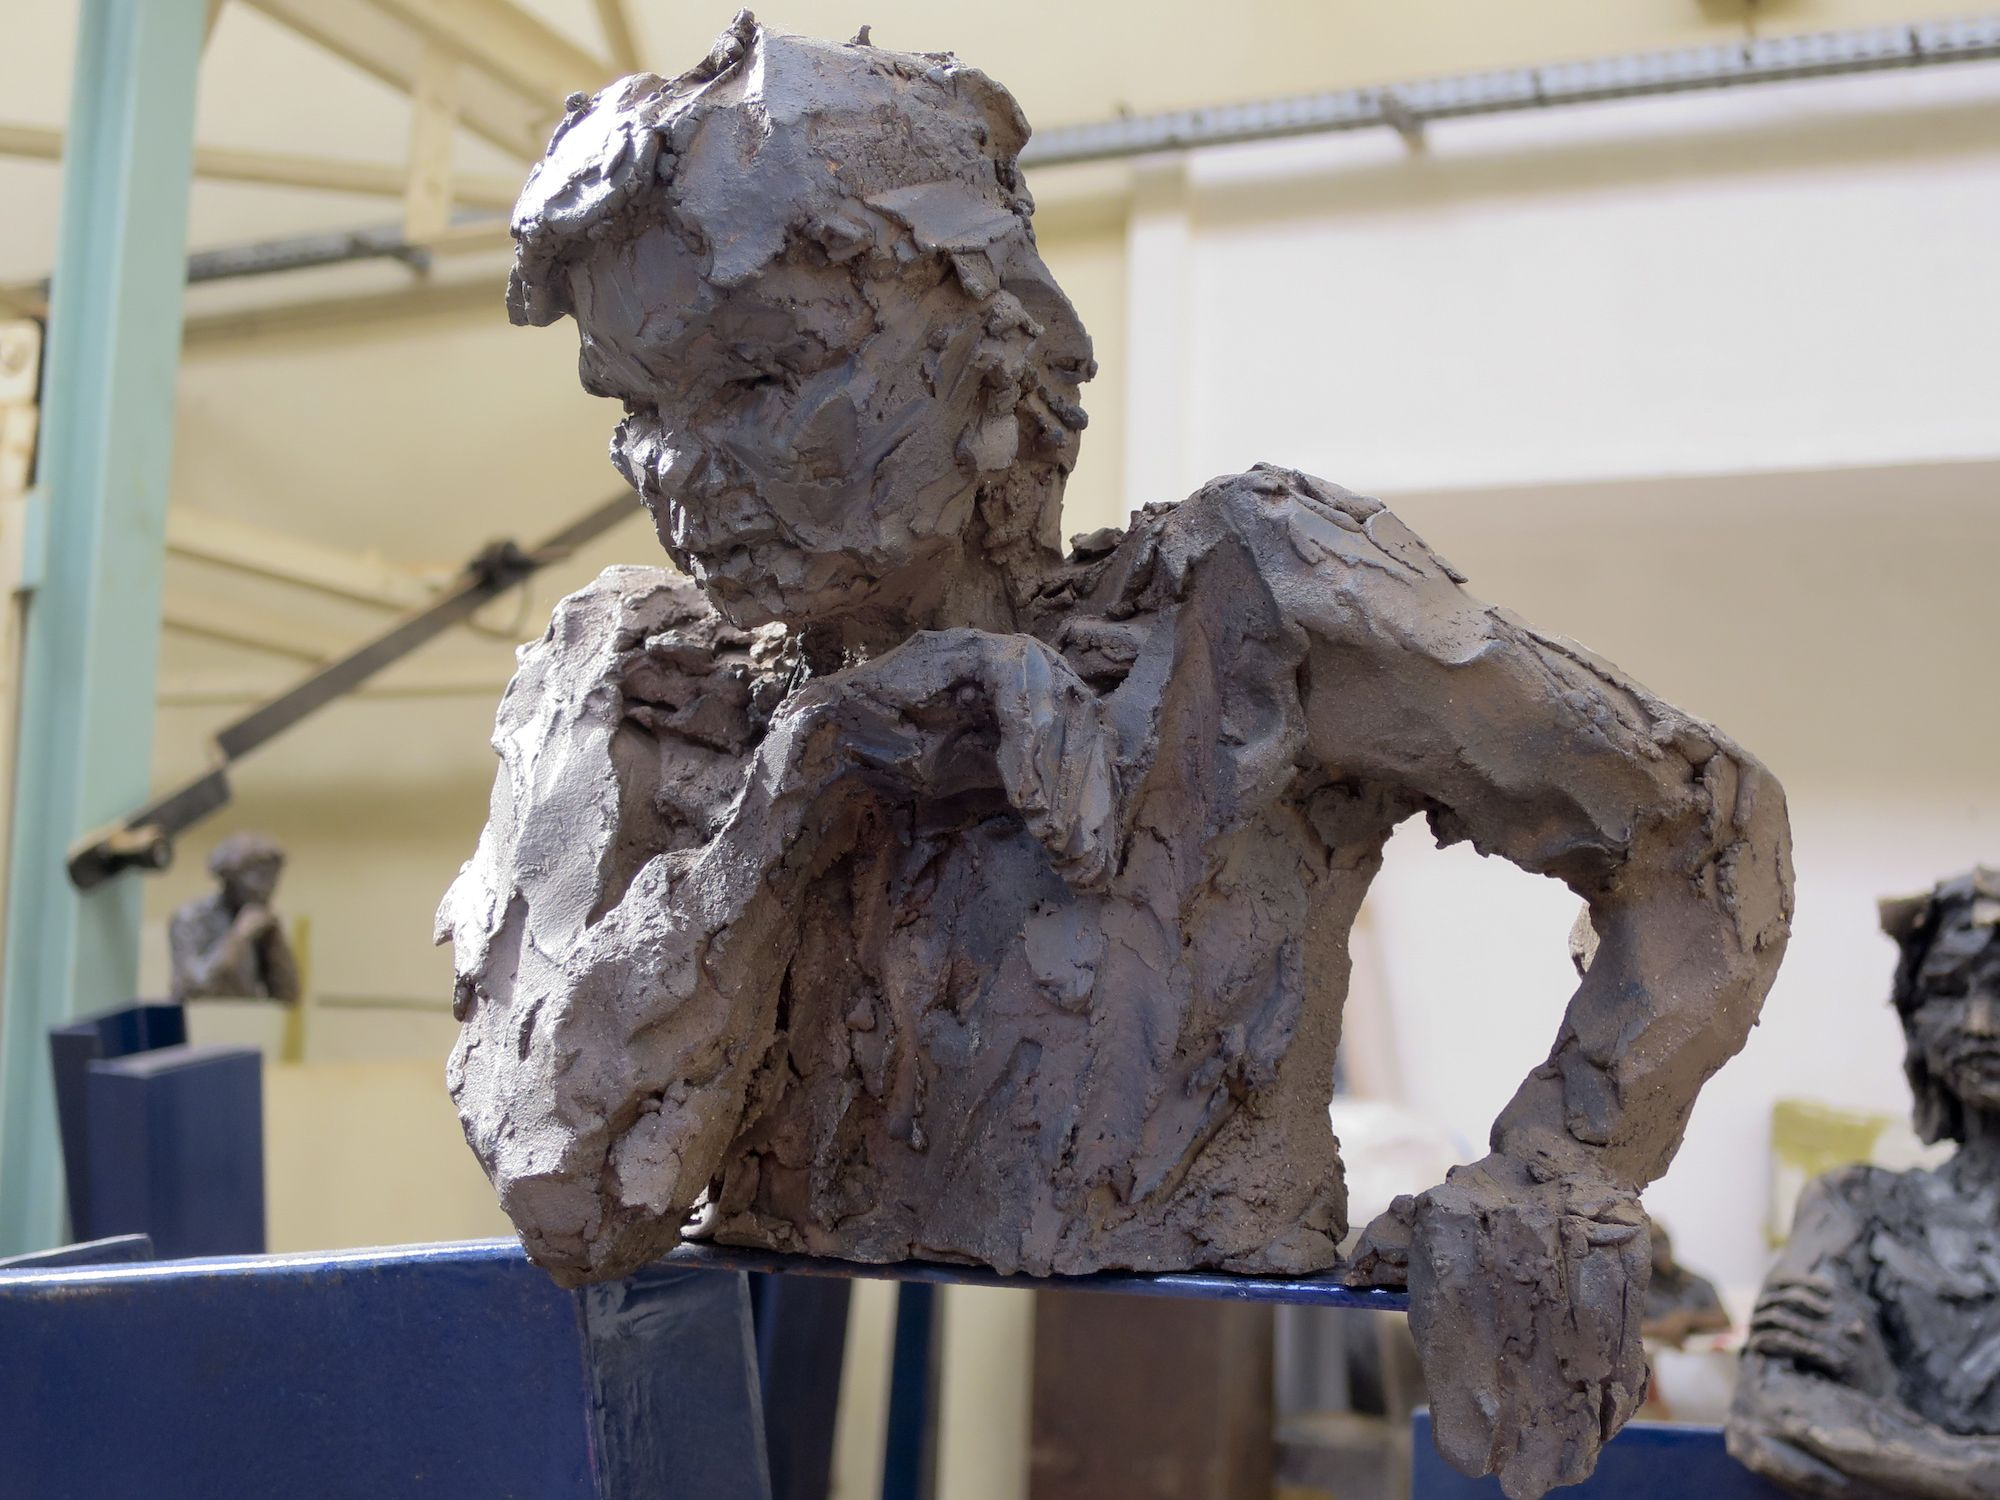 OFW's/Hom's VI,Cécile Raynal,Sculpture